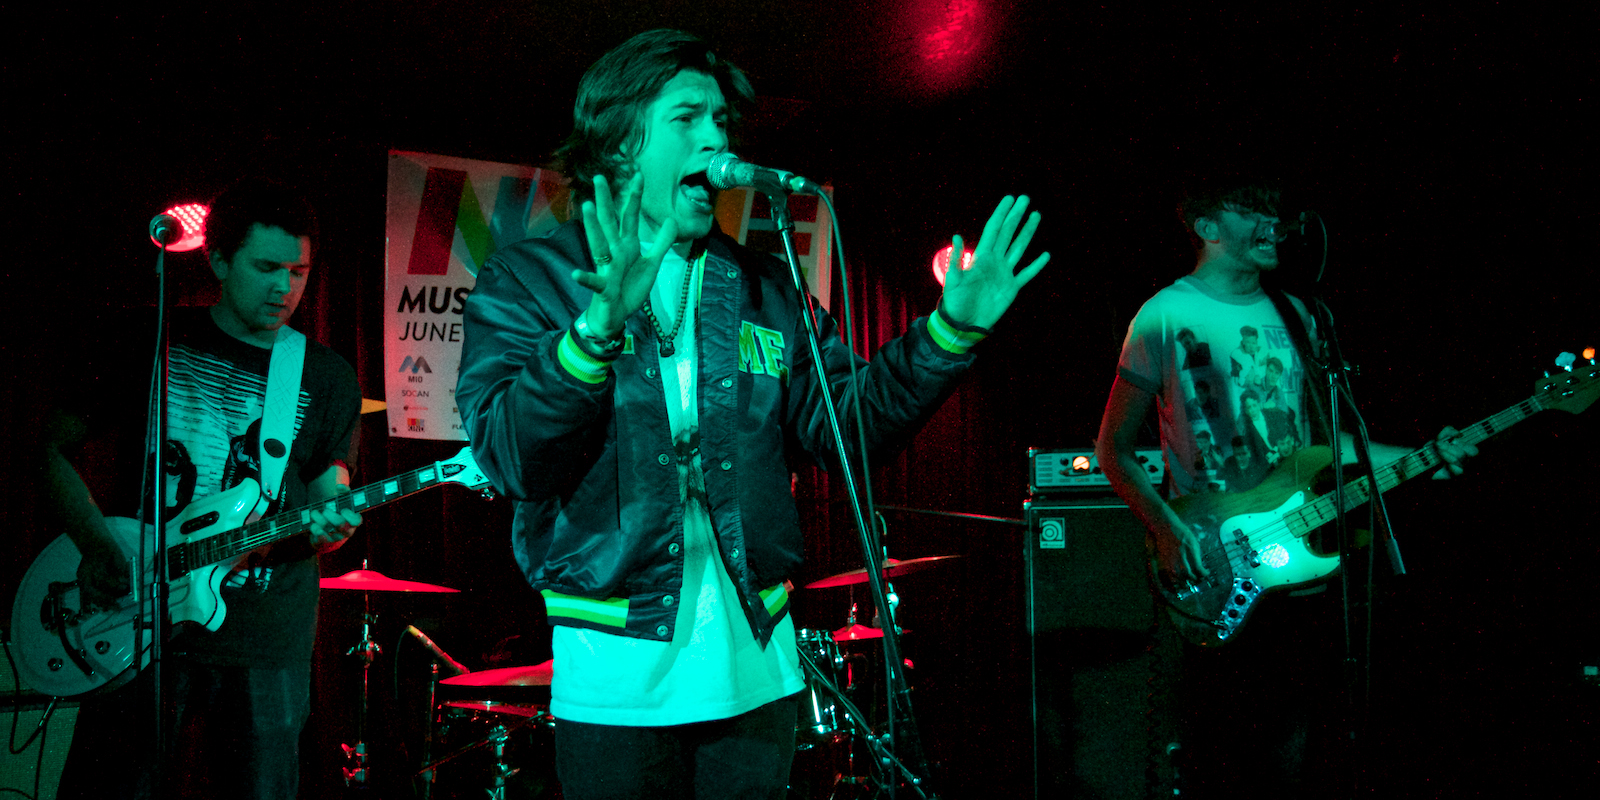 JPNSGRLS at The Silver Dollar Room - NXNE 2014